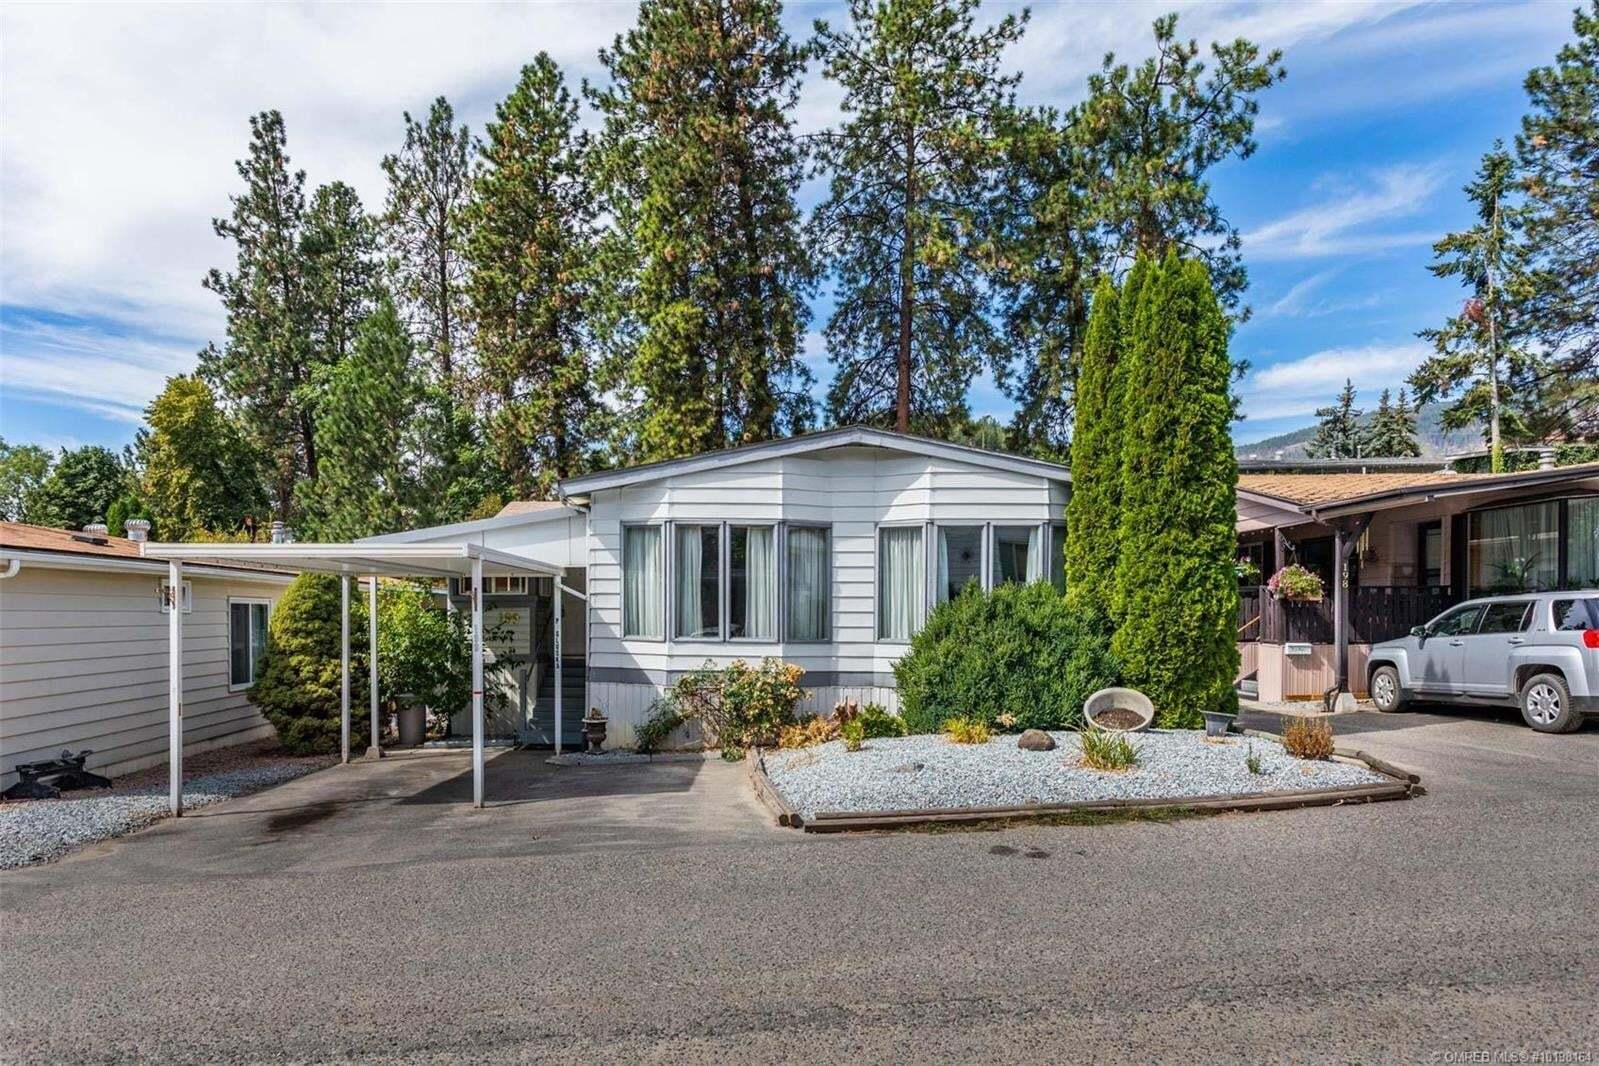 Home for sale at 1999 Highway 97 S  West Kelowna British Columbia - MLS: 10198164